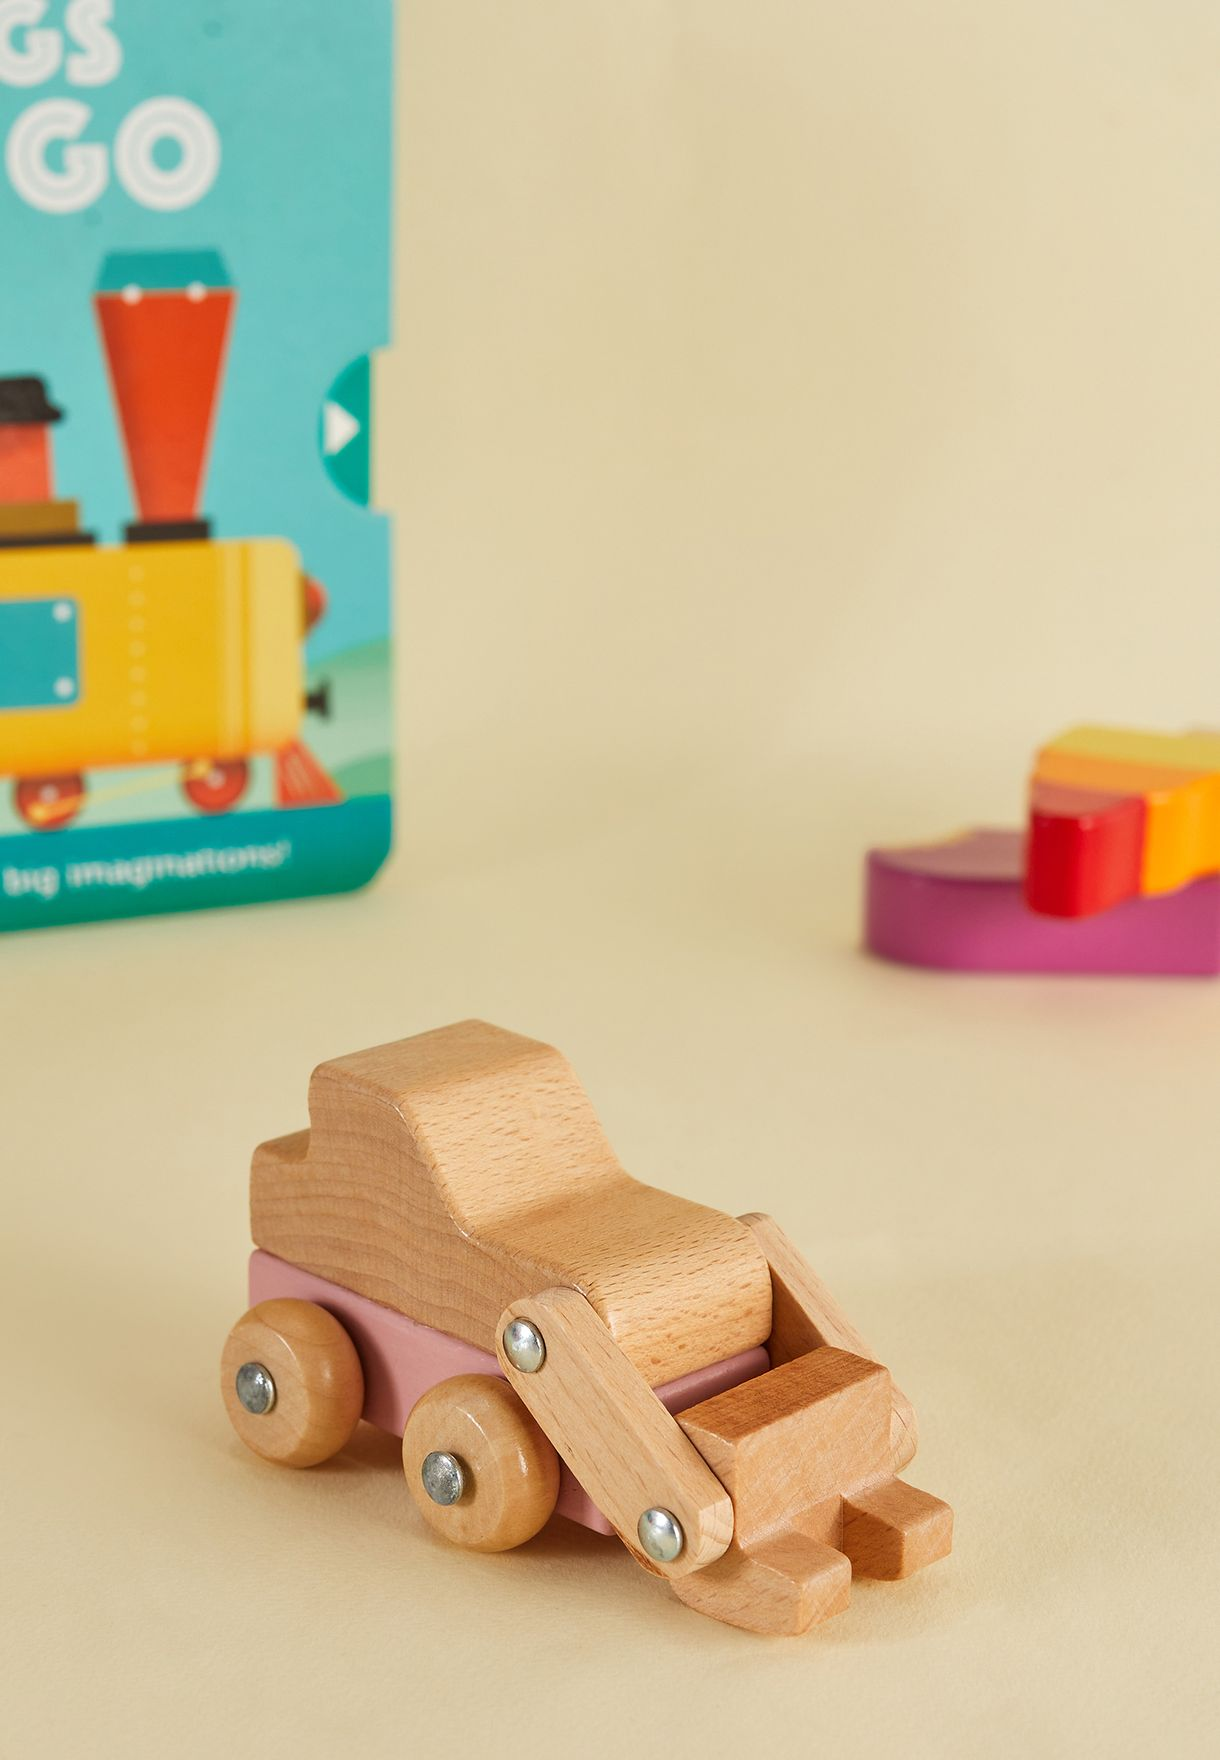 Zephyr Digger Wooden Toy